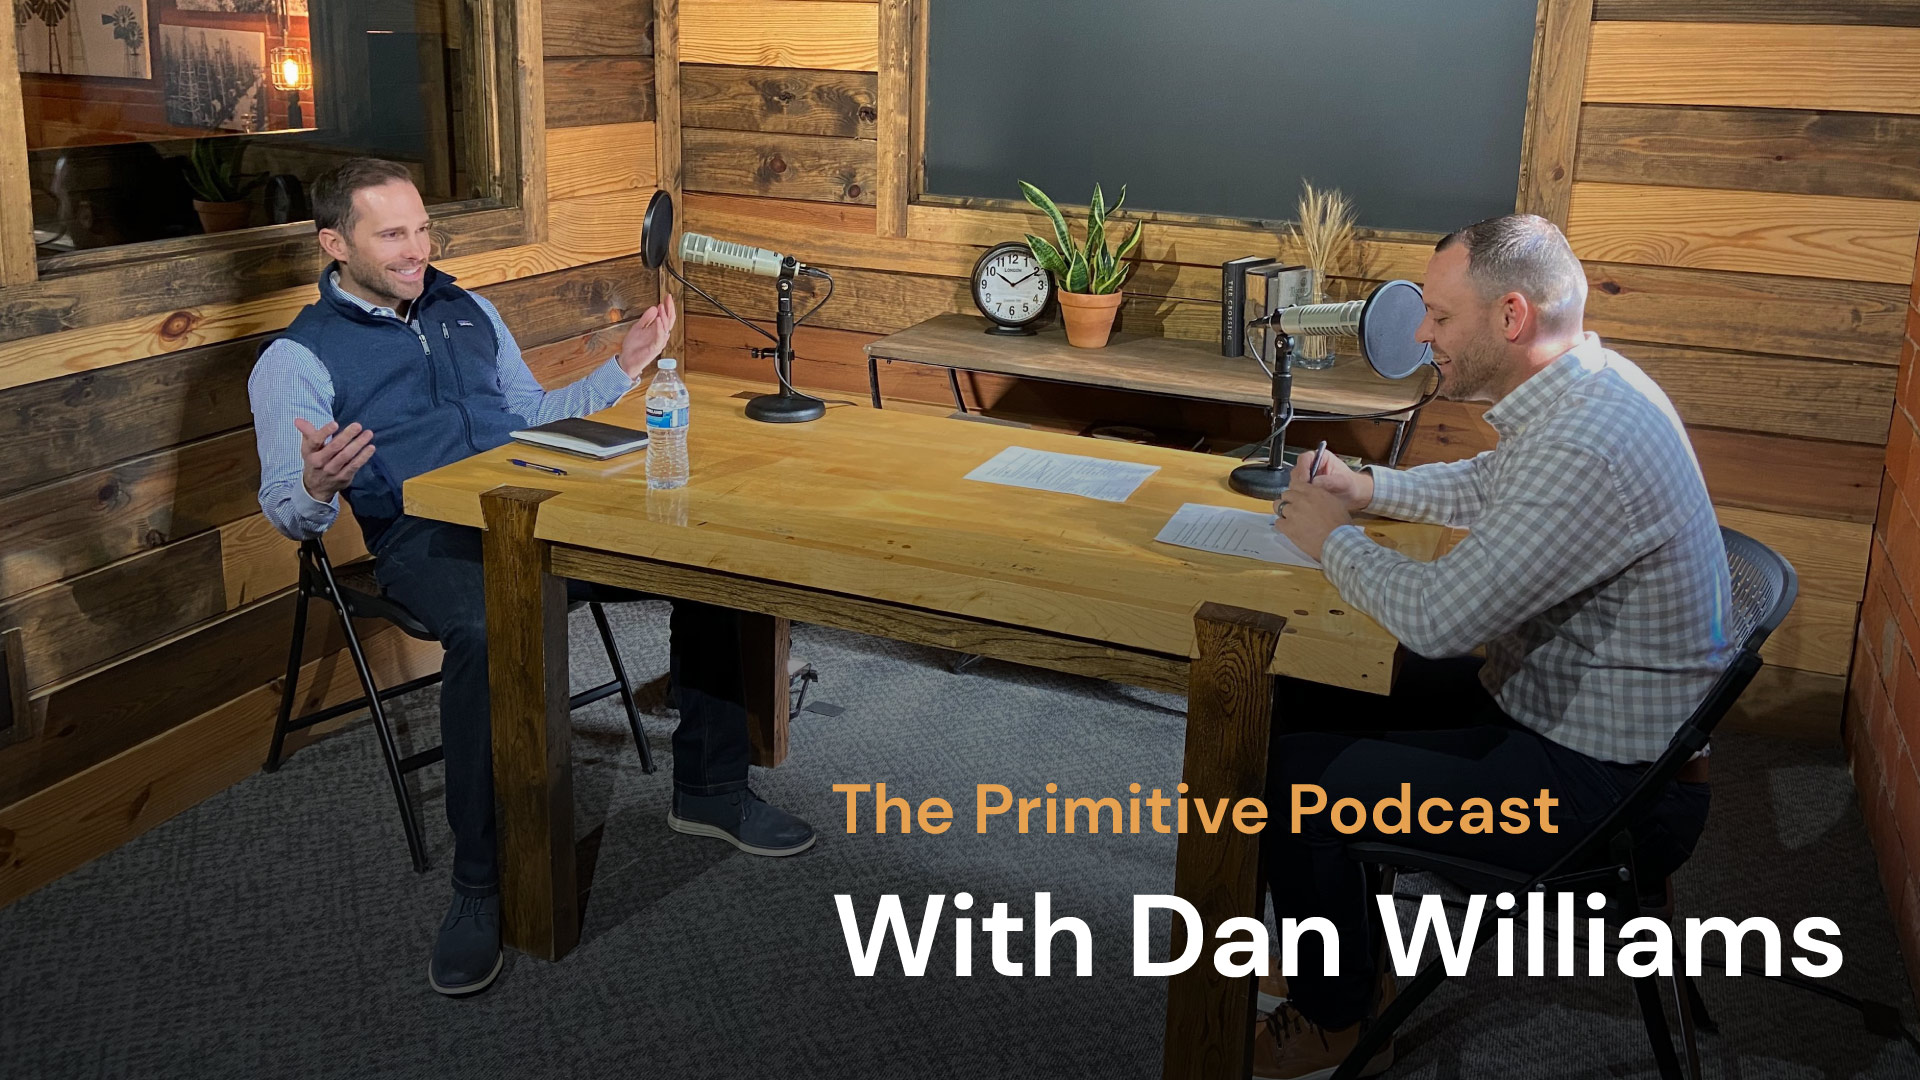 The Primitive Podcast: Dan Williams